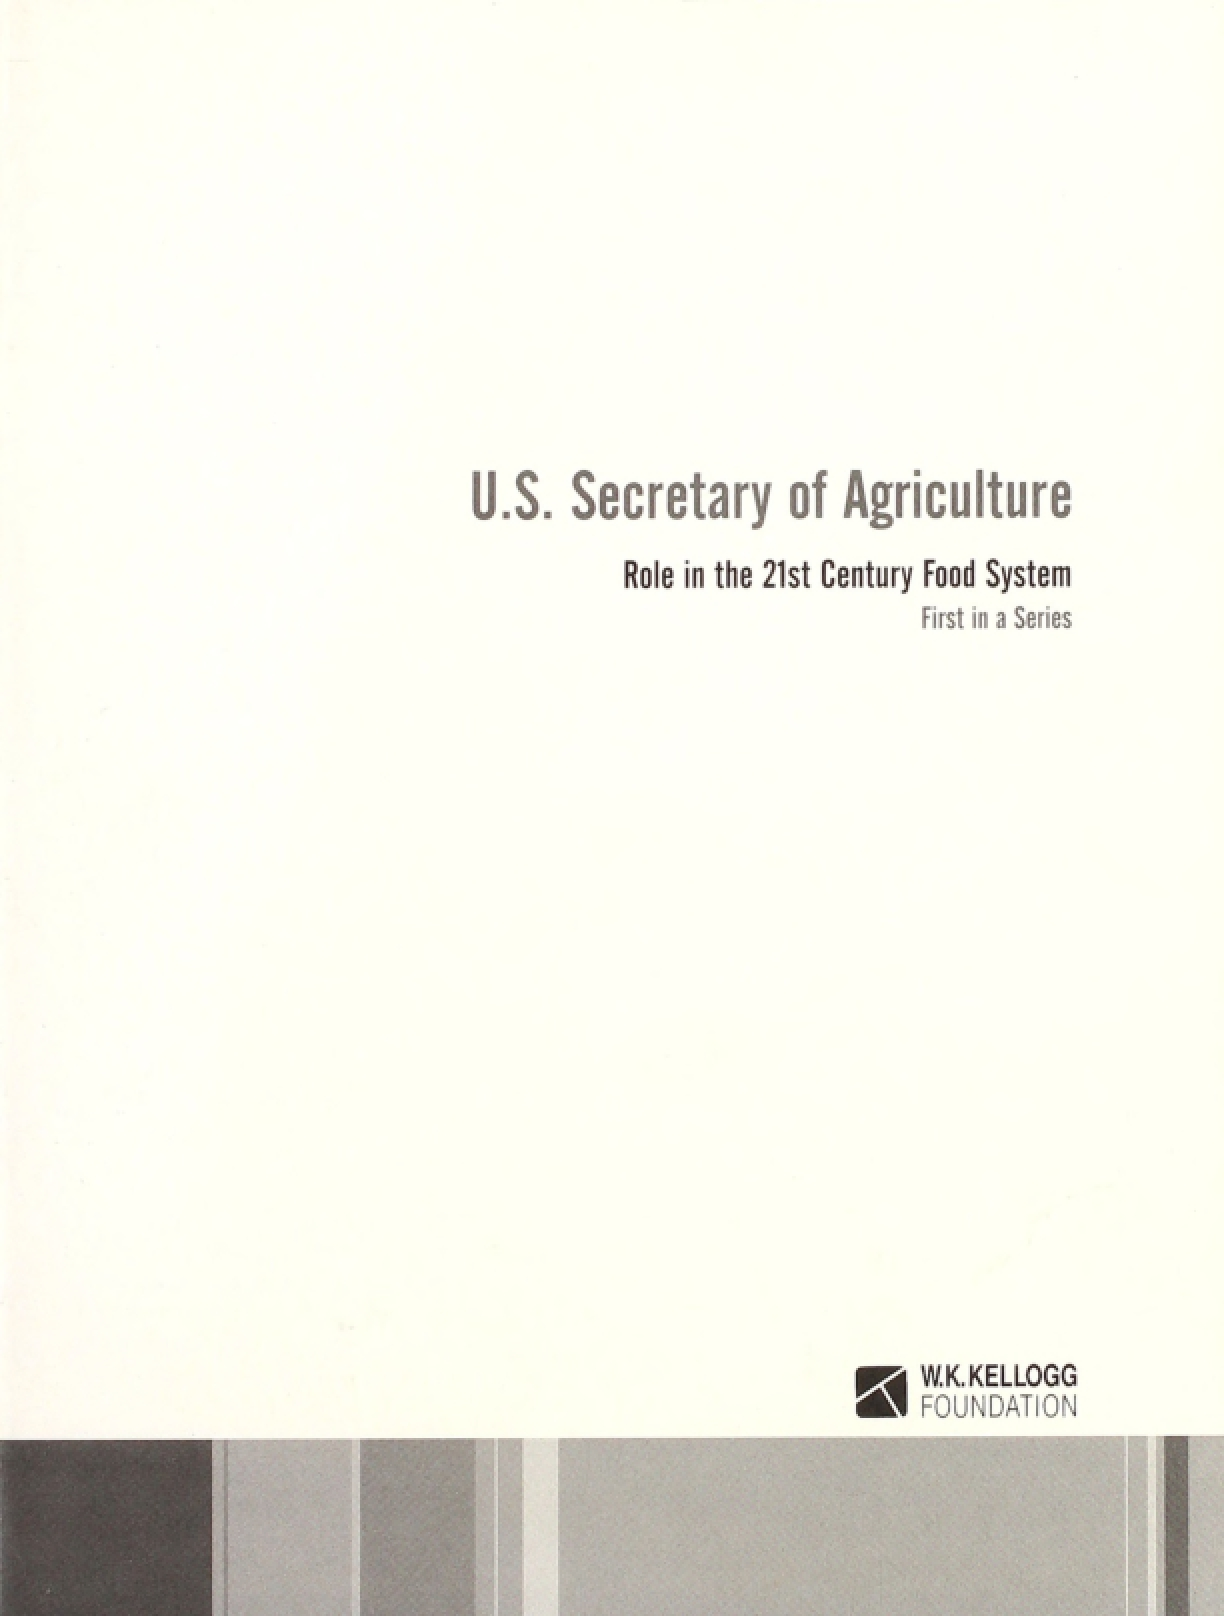 US Secretary of Agriculture: Role in the 21st Century Food System